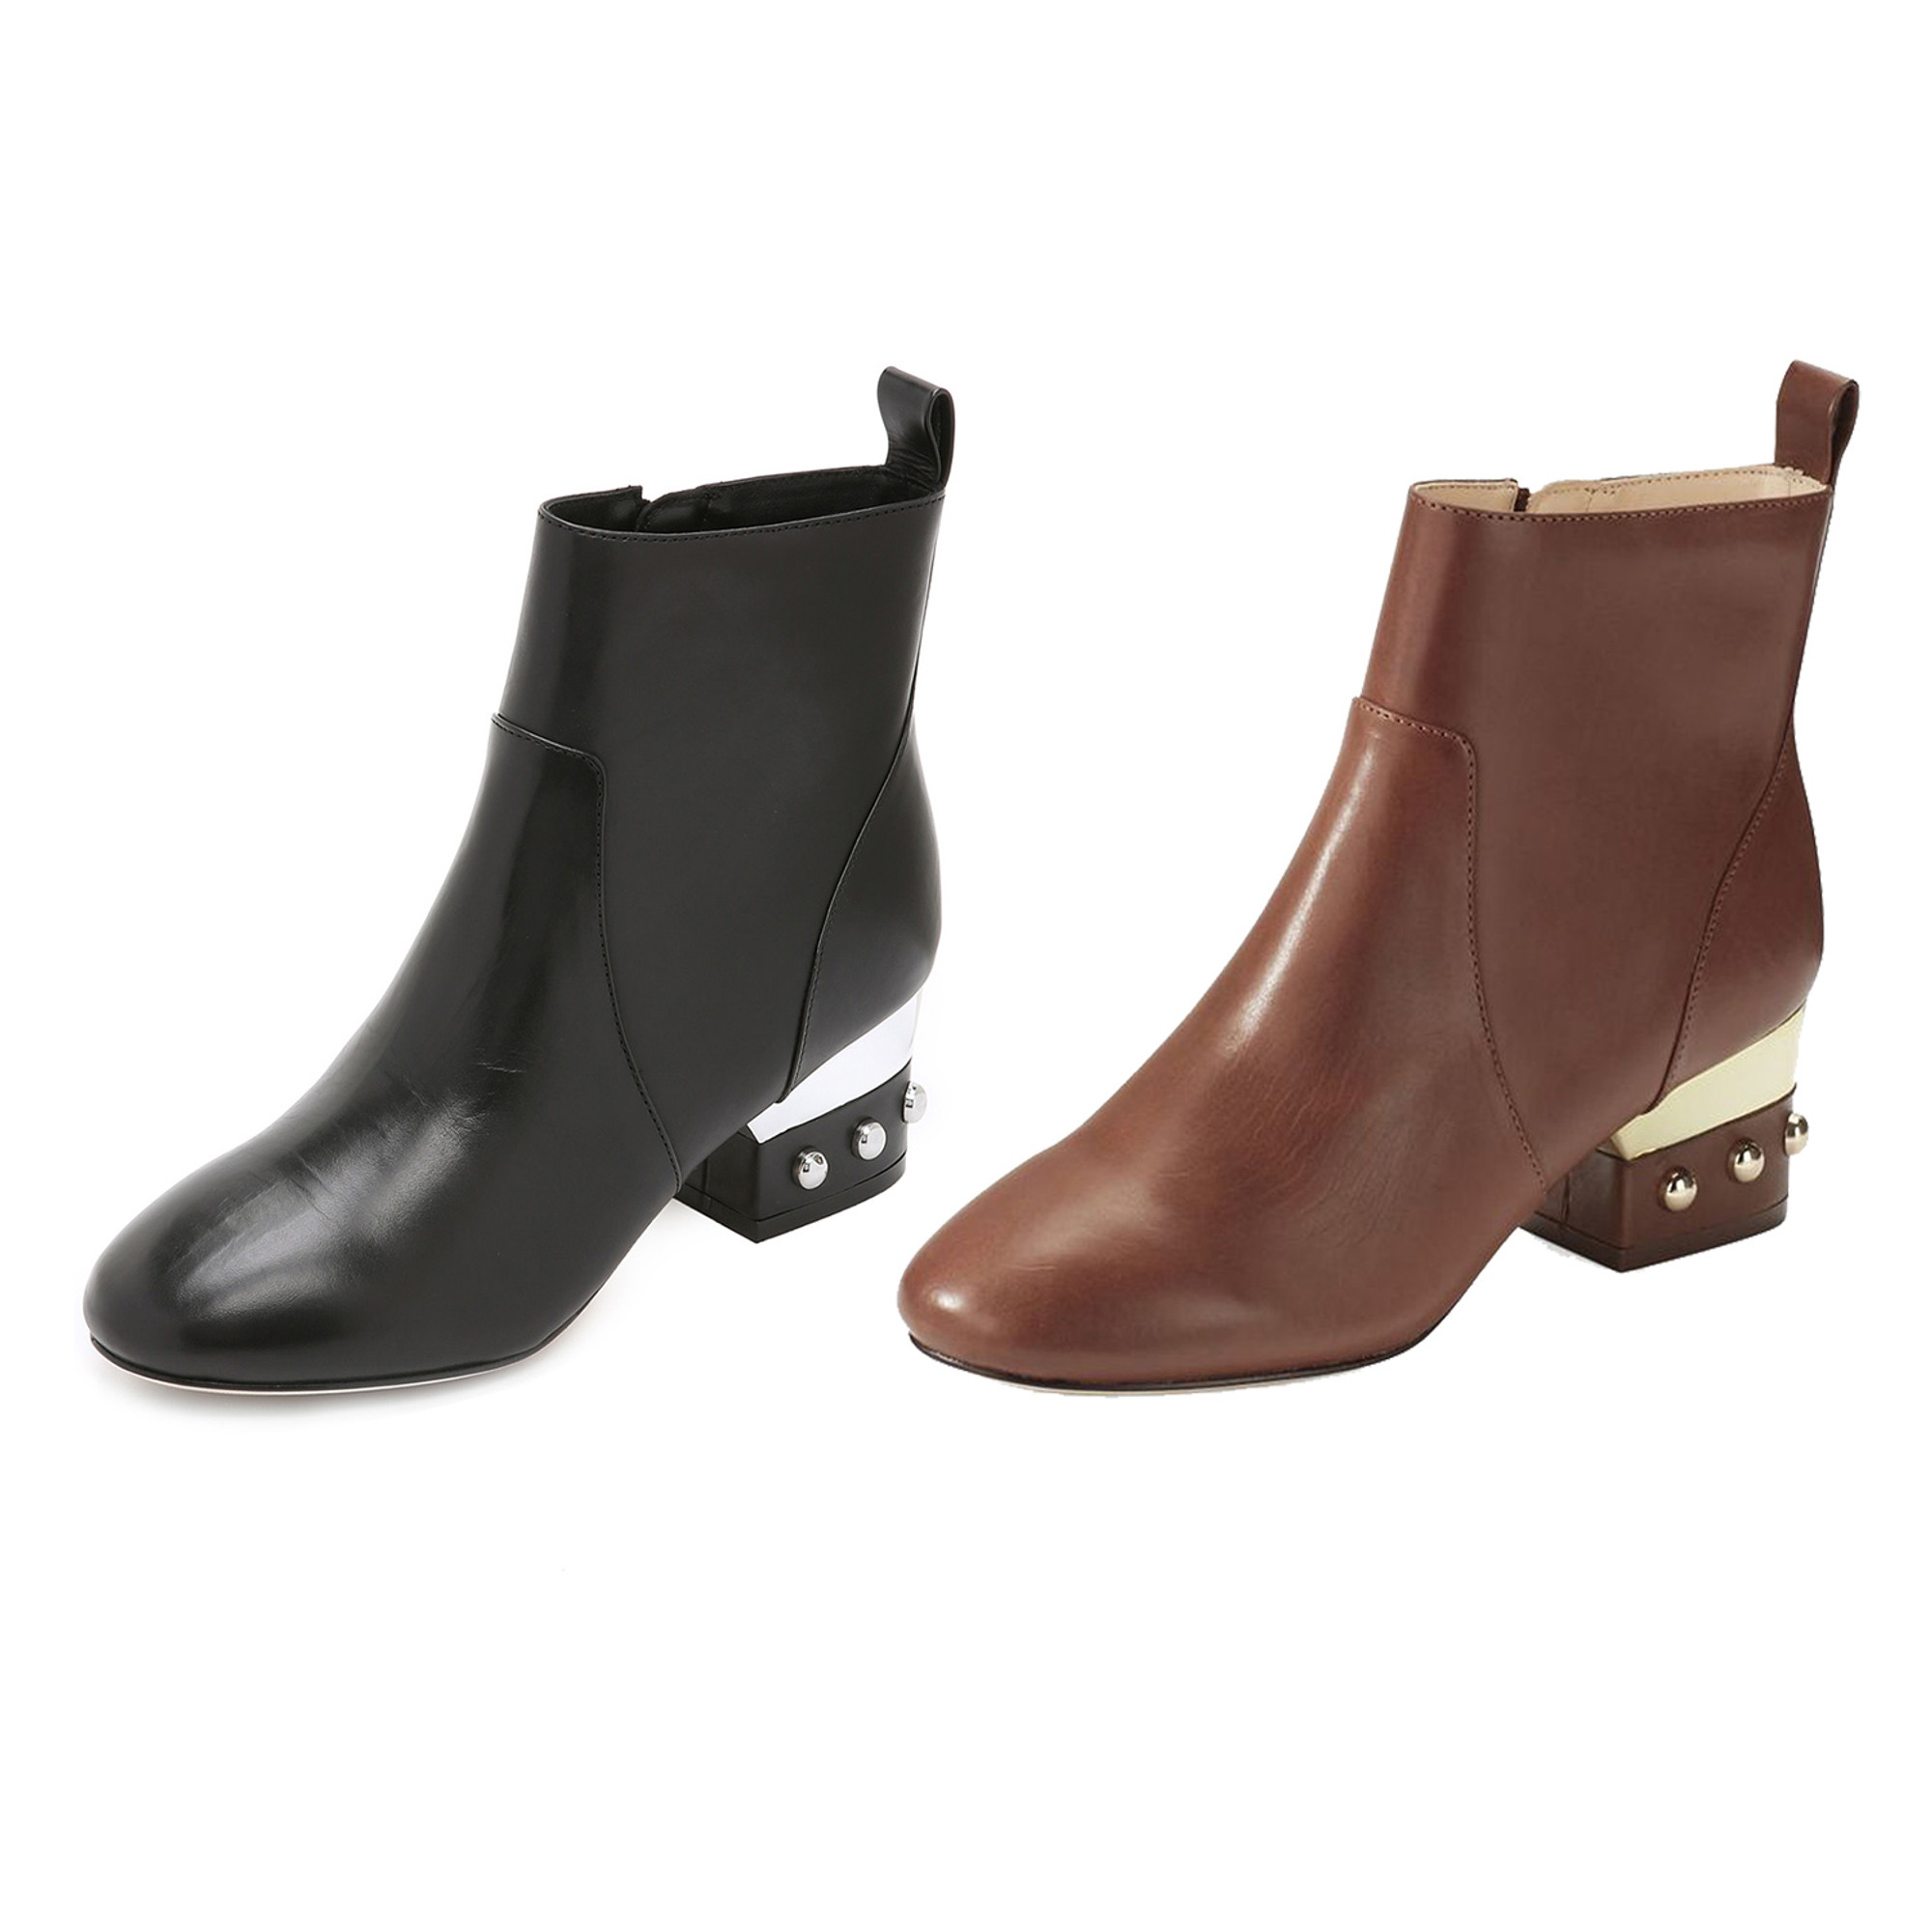 c845ec1cd79 Isa Tapia Women's Hardy Calf Leather Low Block Heel Ankle Boots